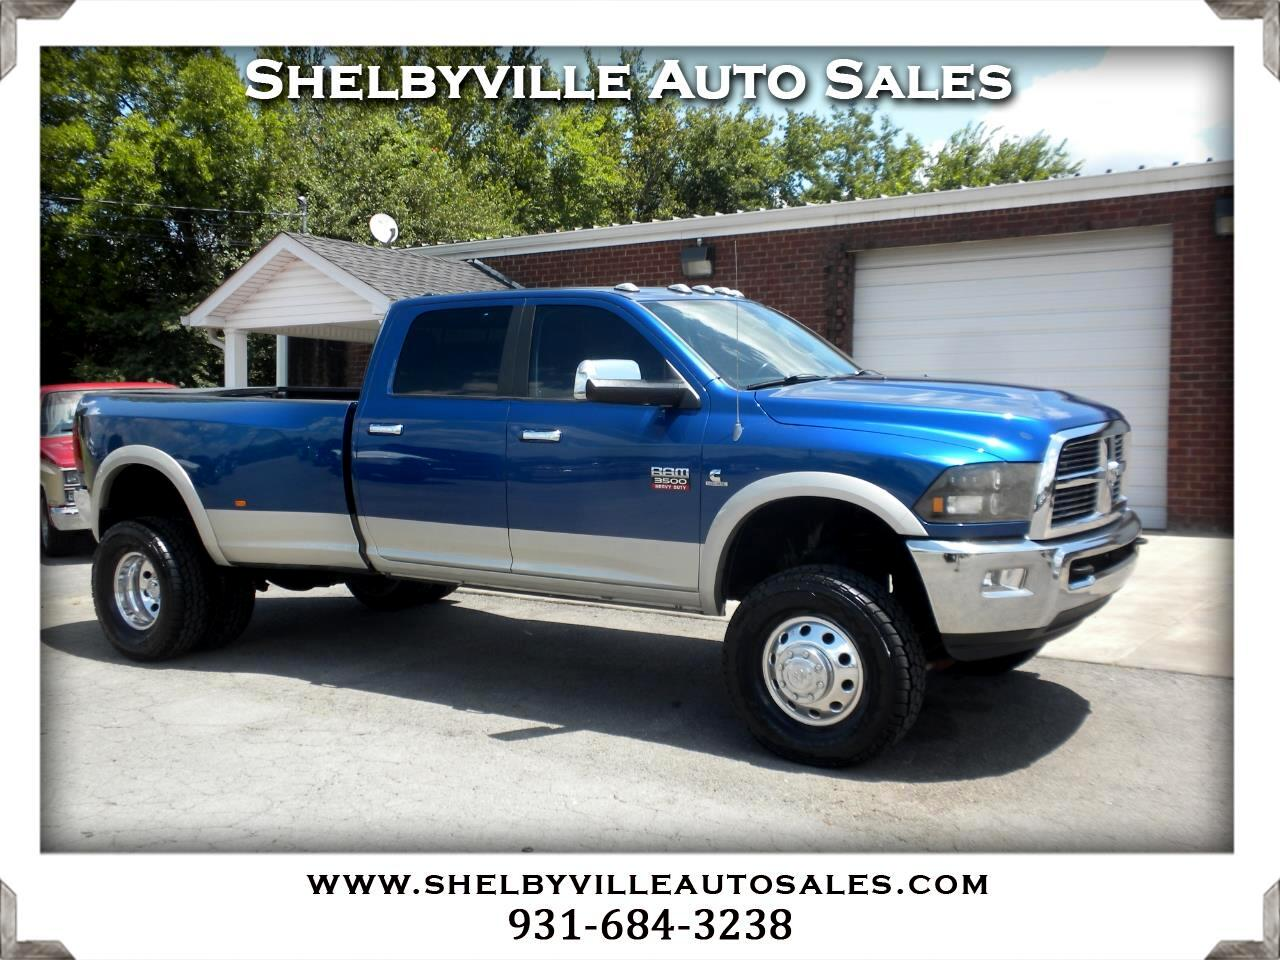 Buy Here Pay Here Cars for Sale Shelbyville TN 37160 Shelbyville